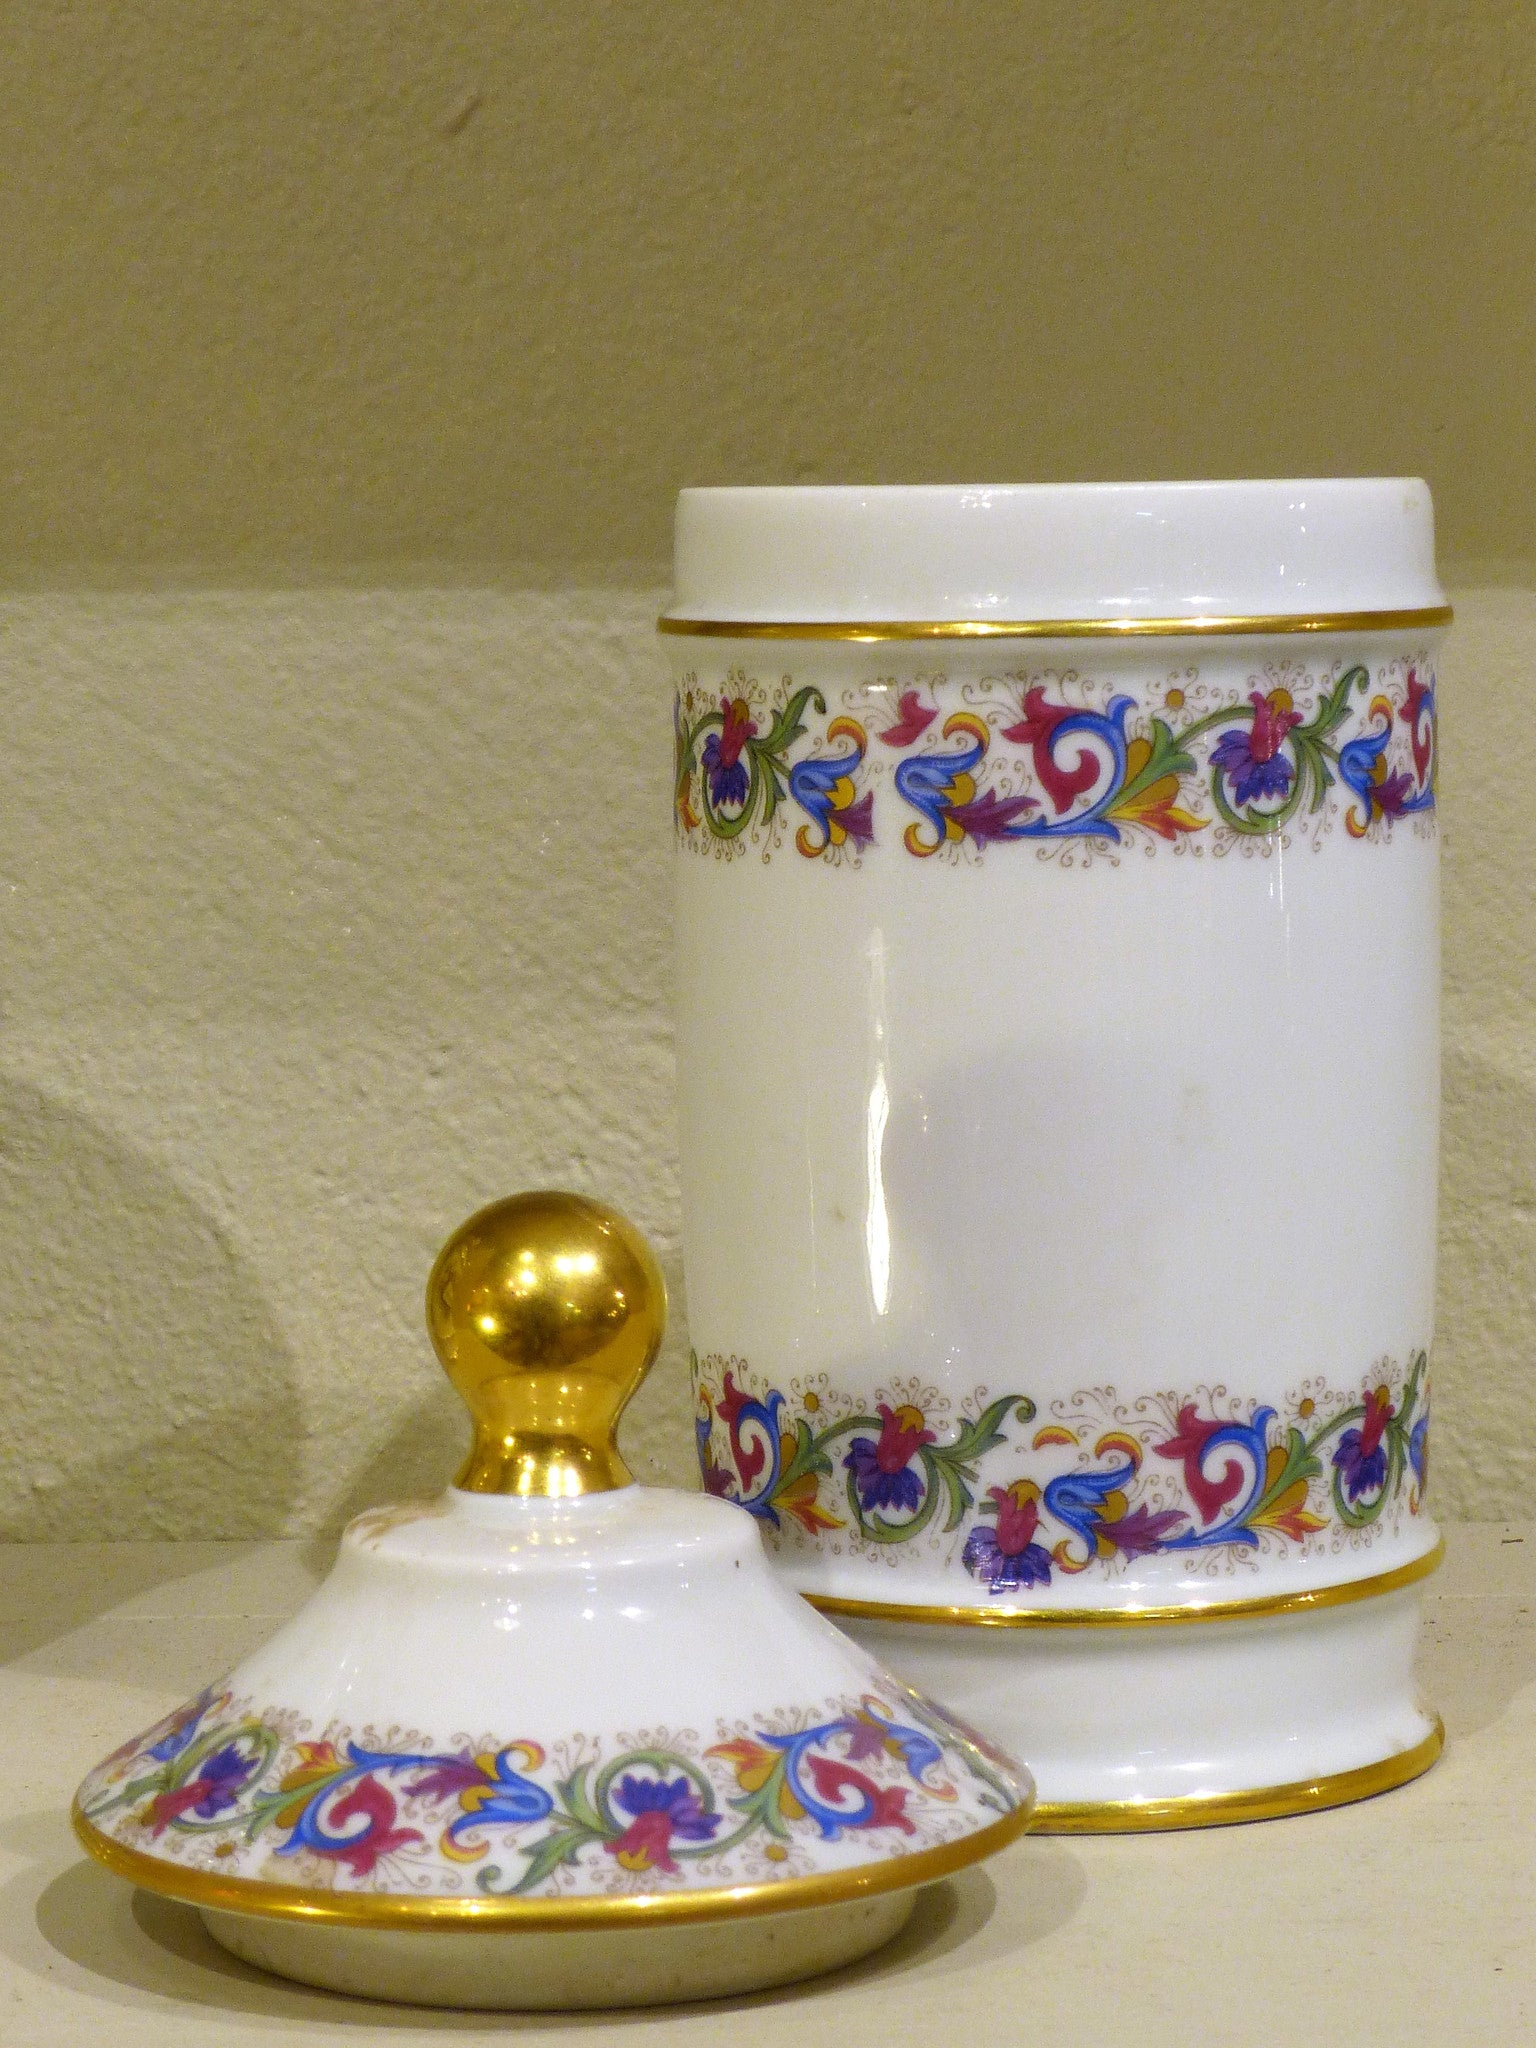 Limoges porcelain apothecary jar